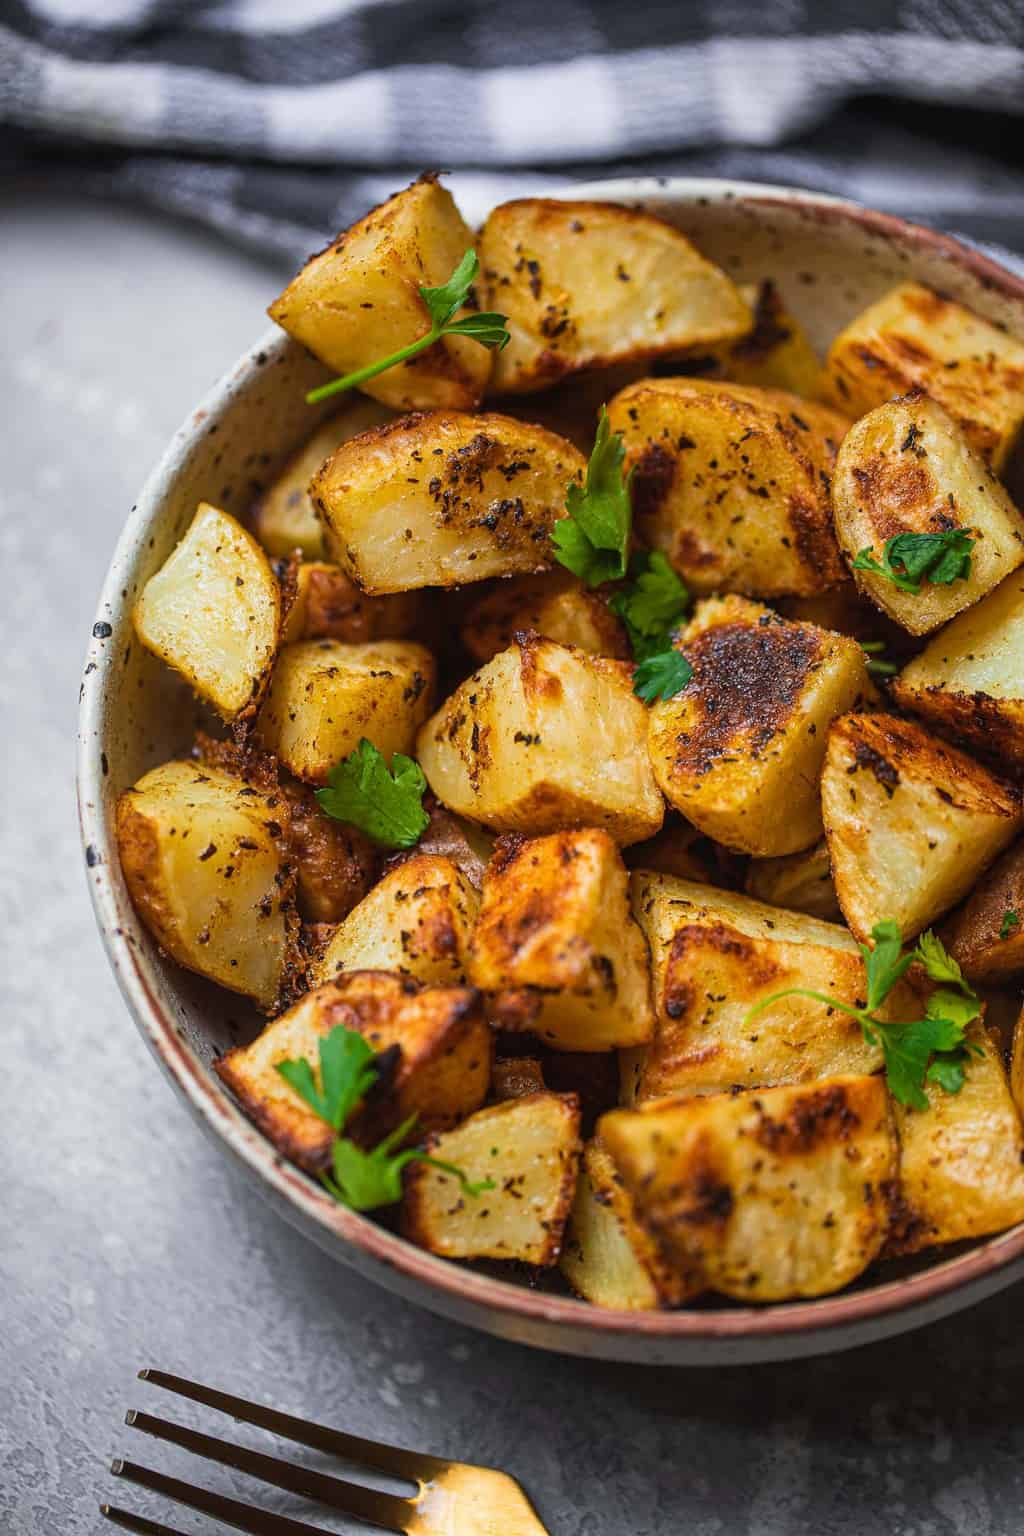 Crispy potatoes in a white bowl